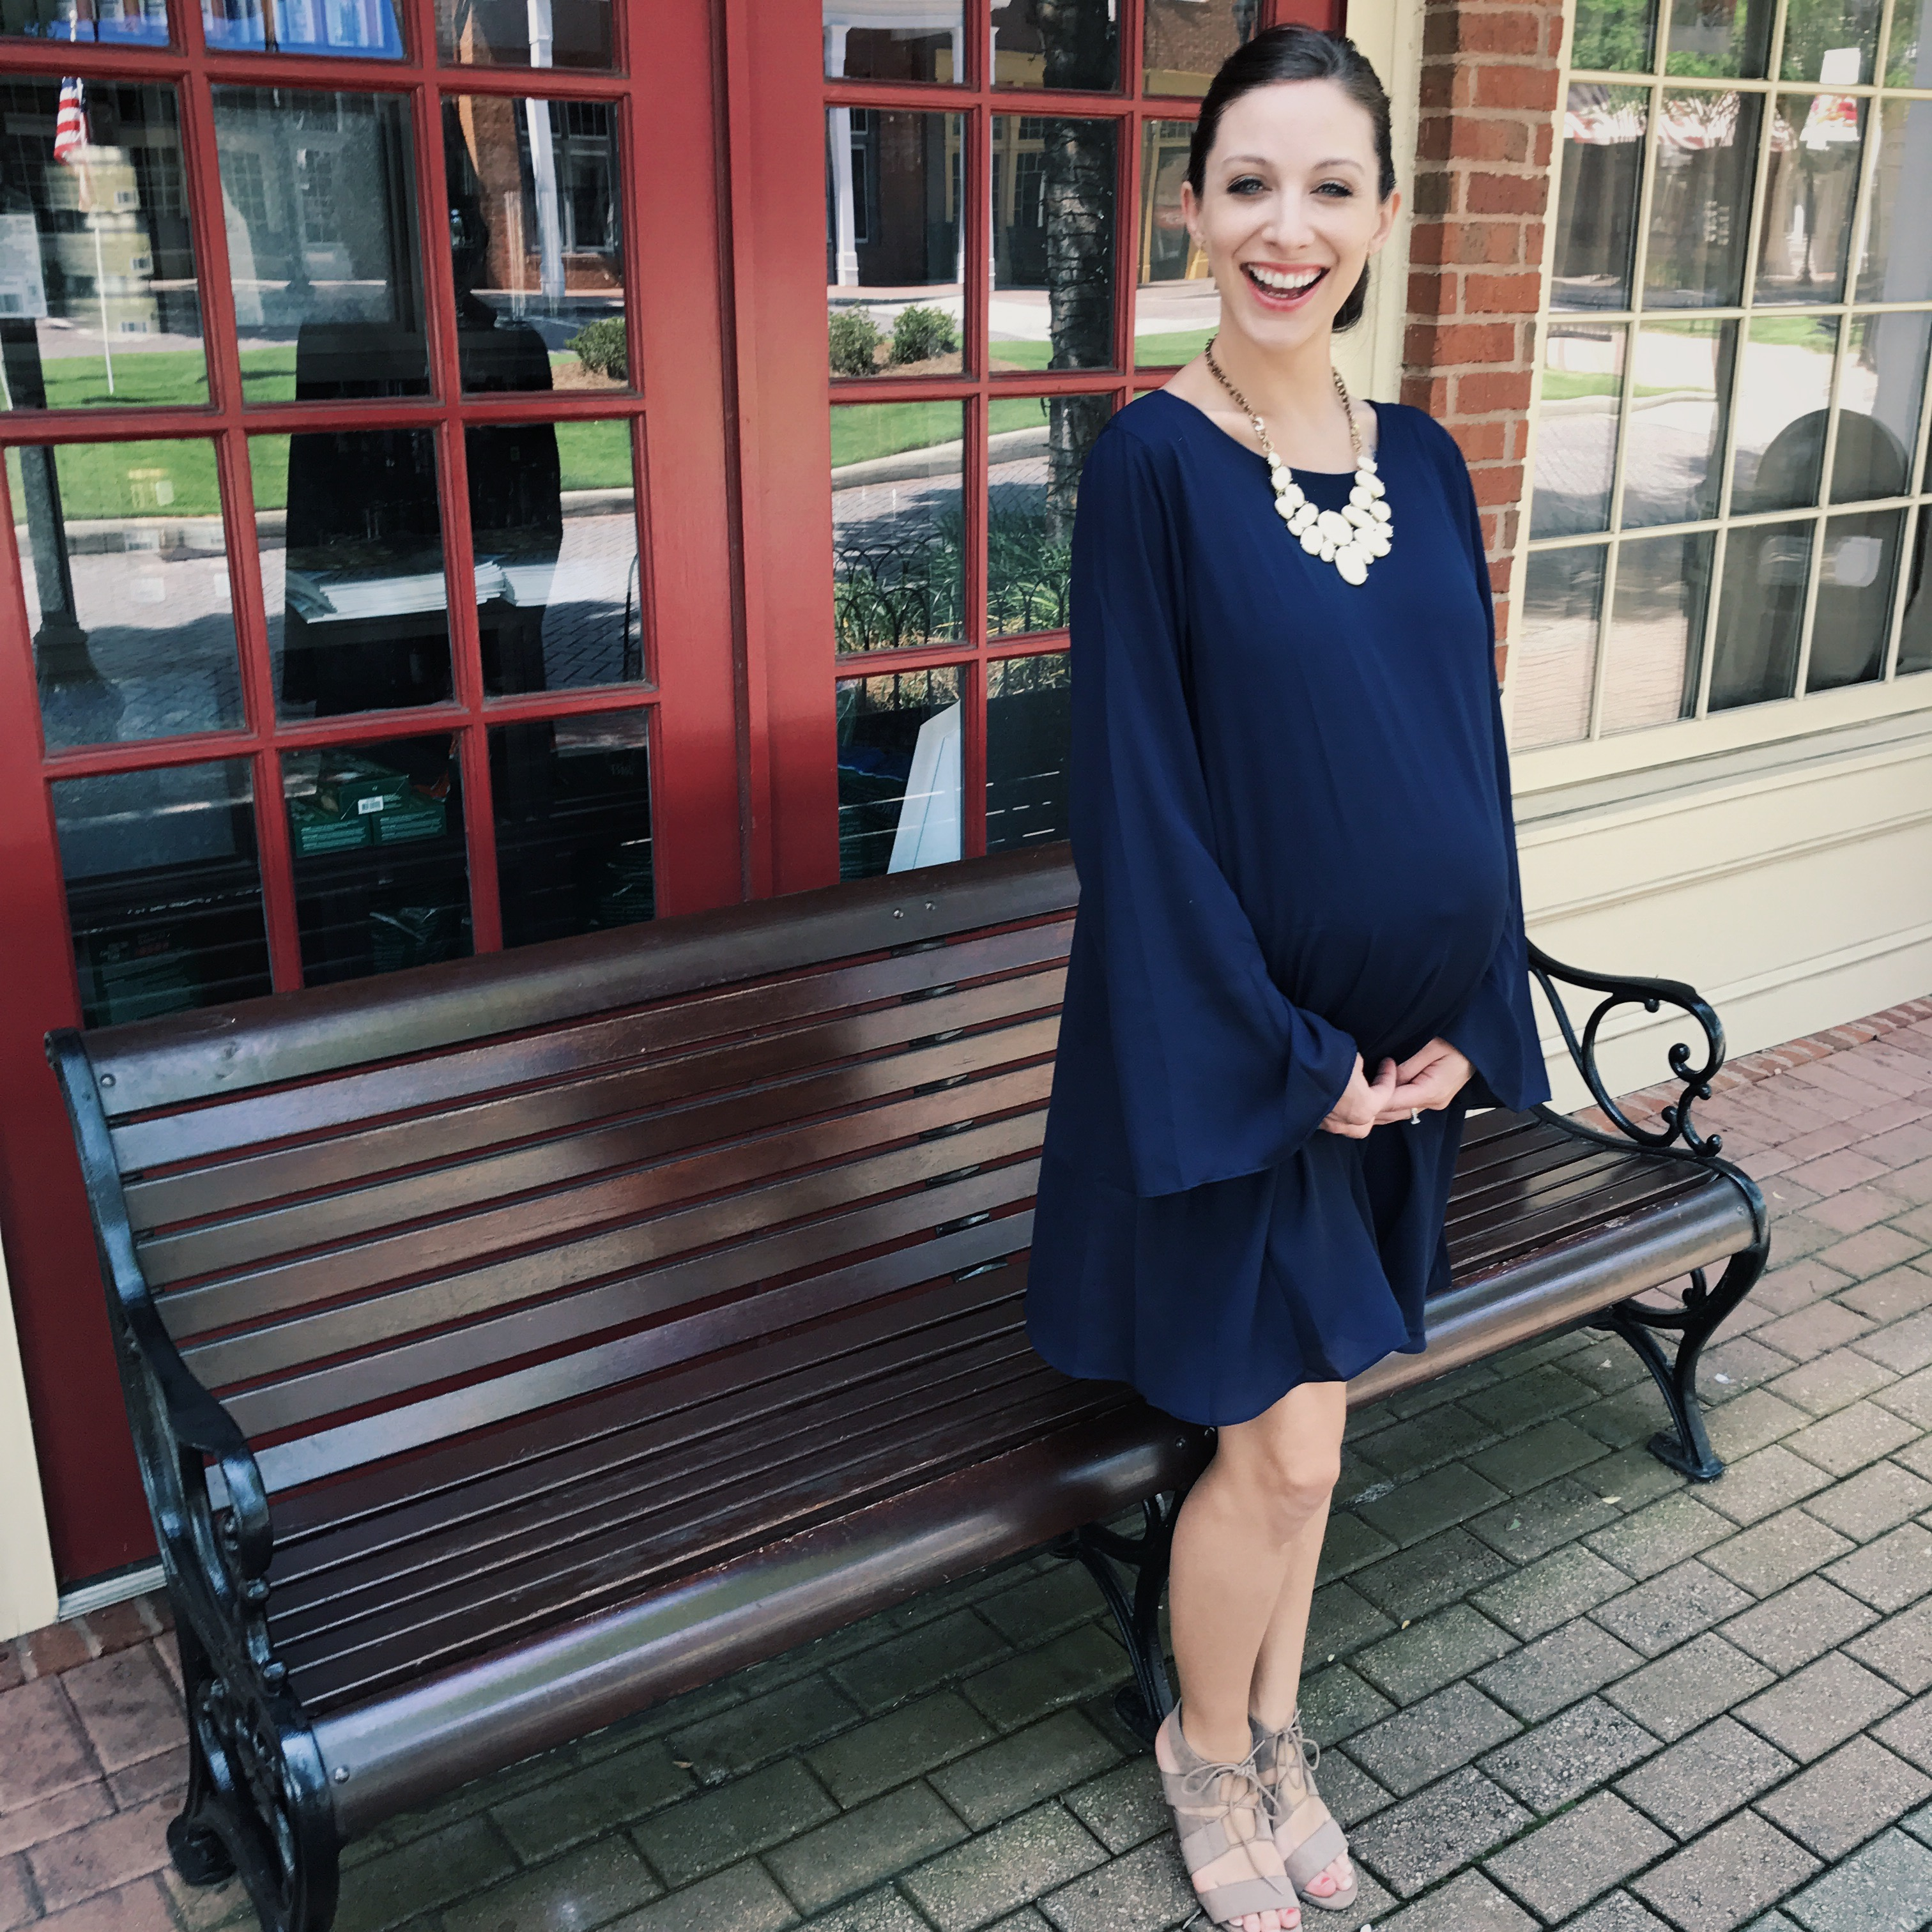 59ebc61f4fd This week I wanted to dress it up and share a favorite date night look for  the Fourth of July week!